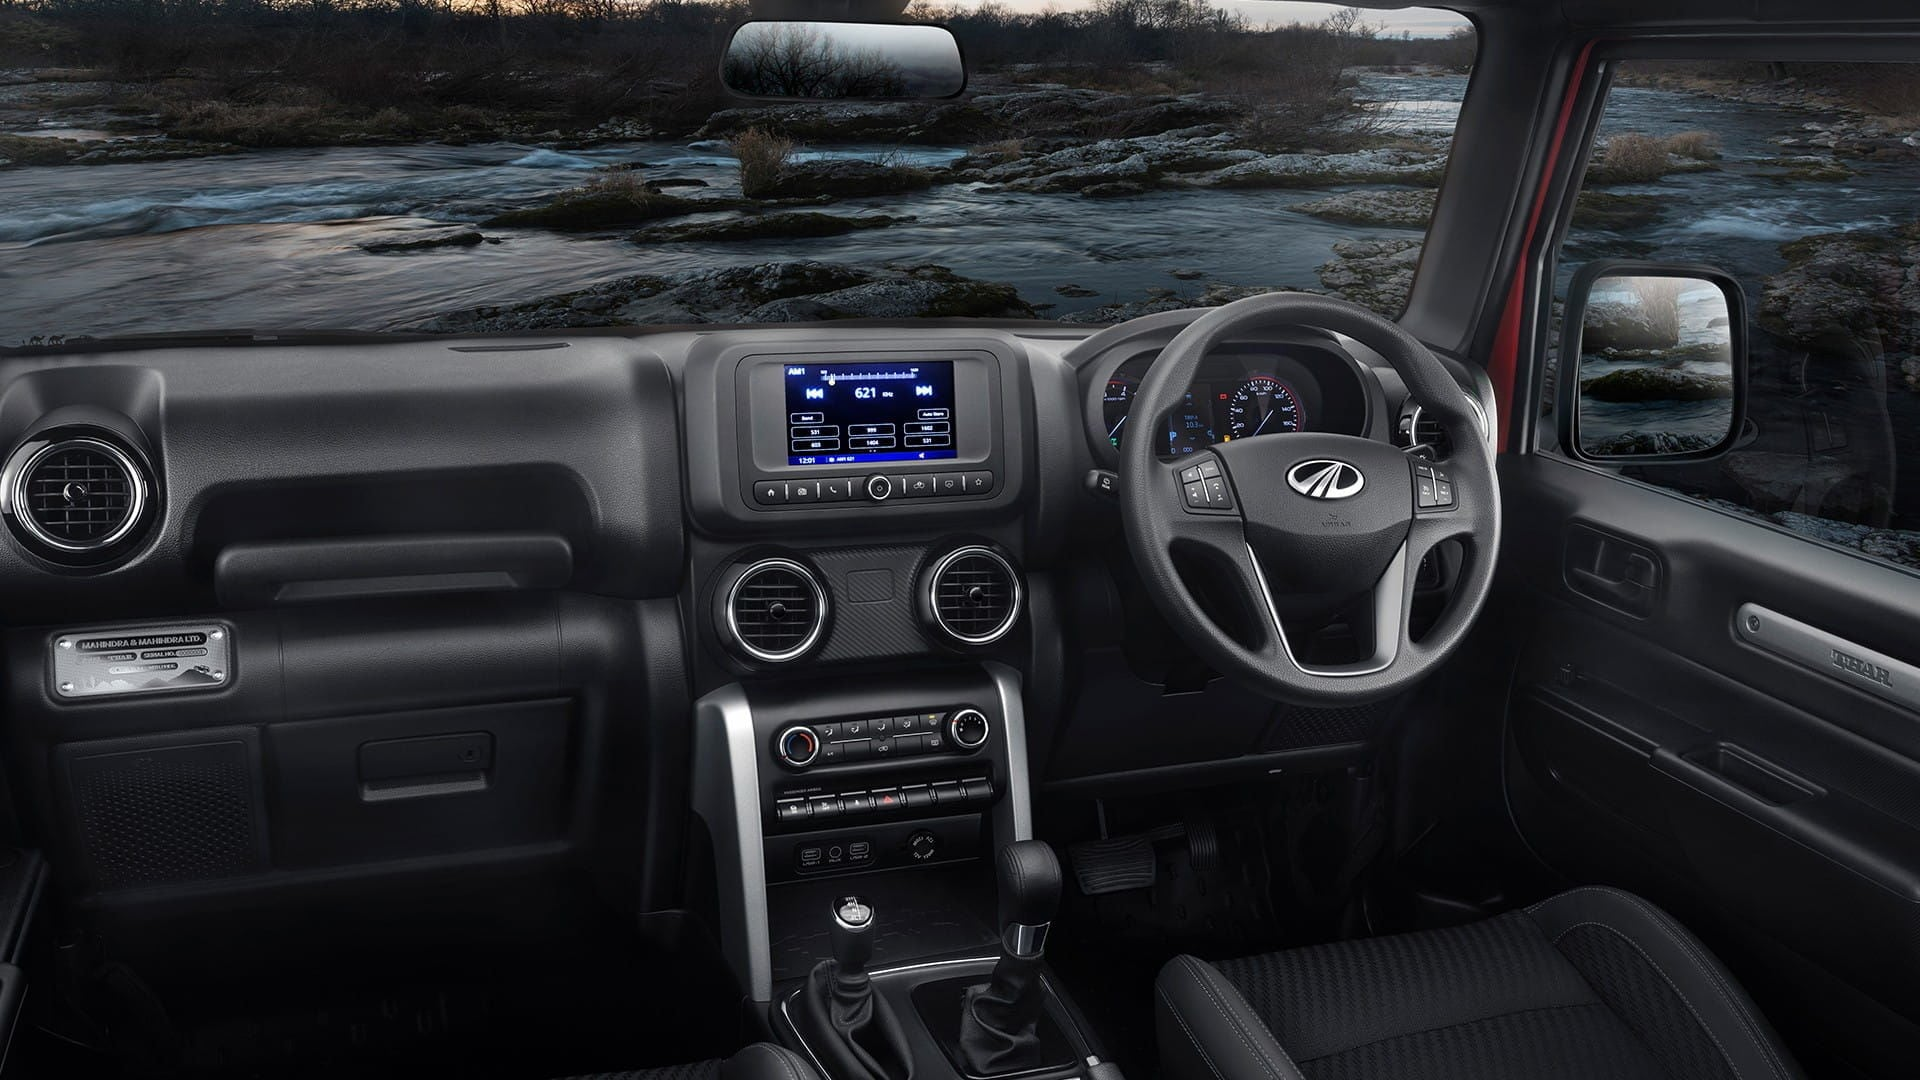 The seven-inch infotainment screen inside the new Thar supports Android Auto and Apple CarPlay and is claimed to be drizzle proof.